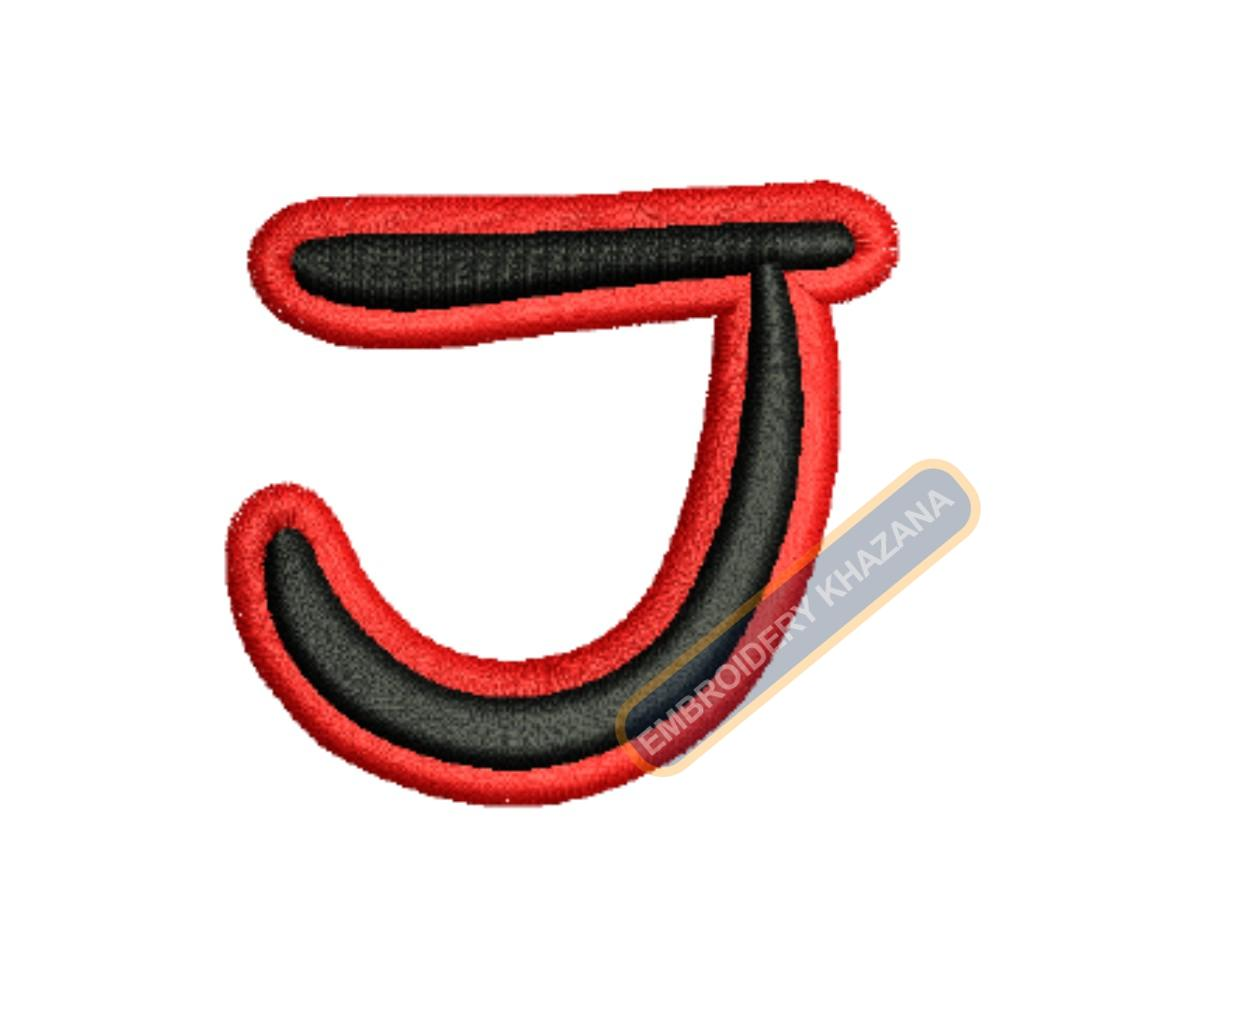 3D PUFF LETTER J WITH OUTLINE EMBROIDERY DESIGN